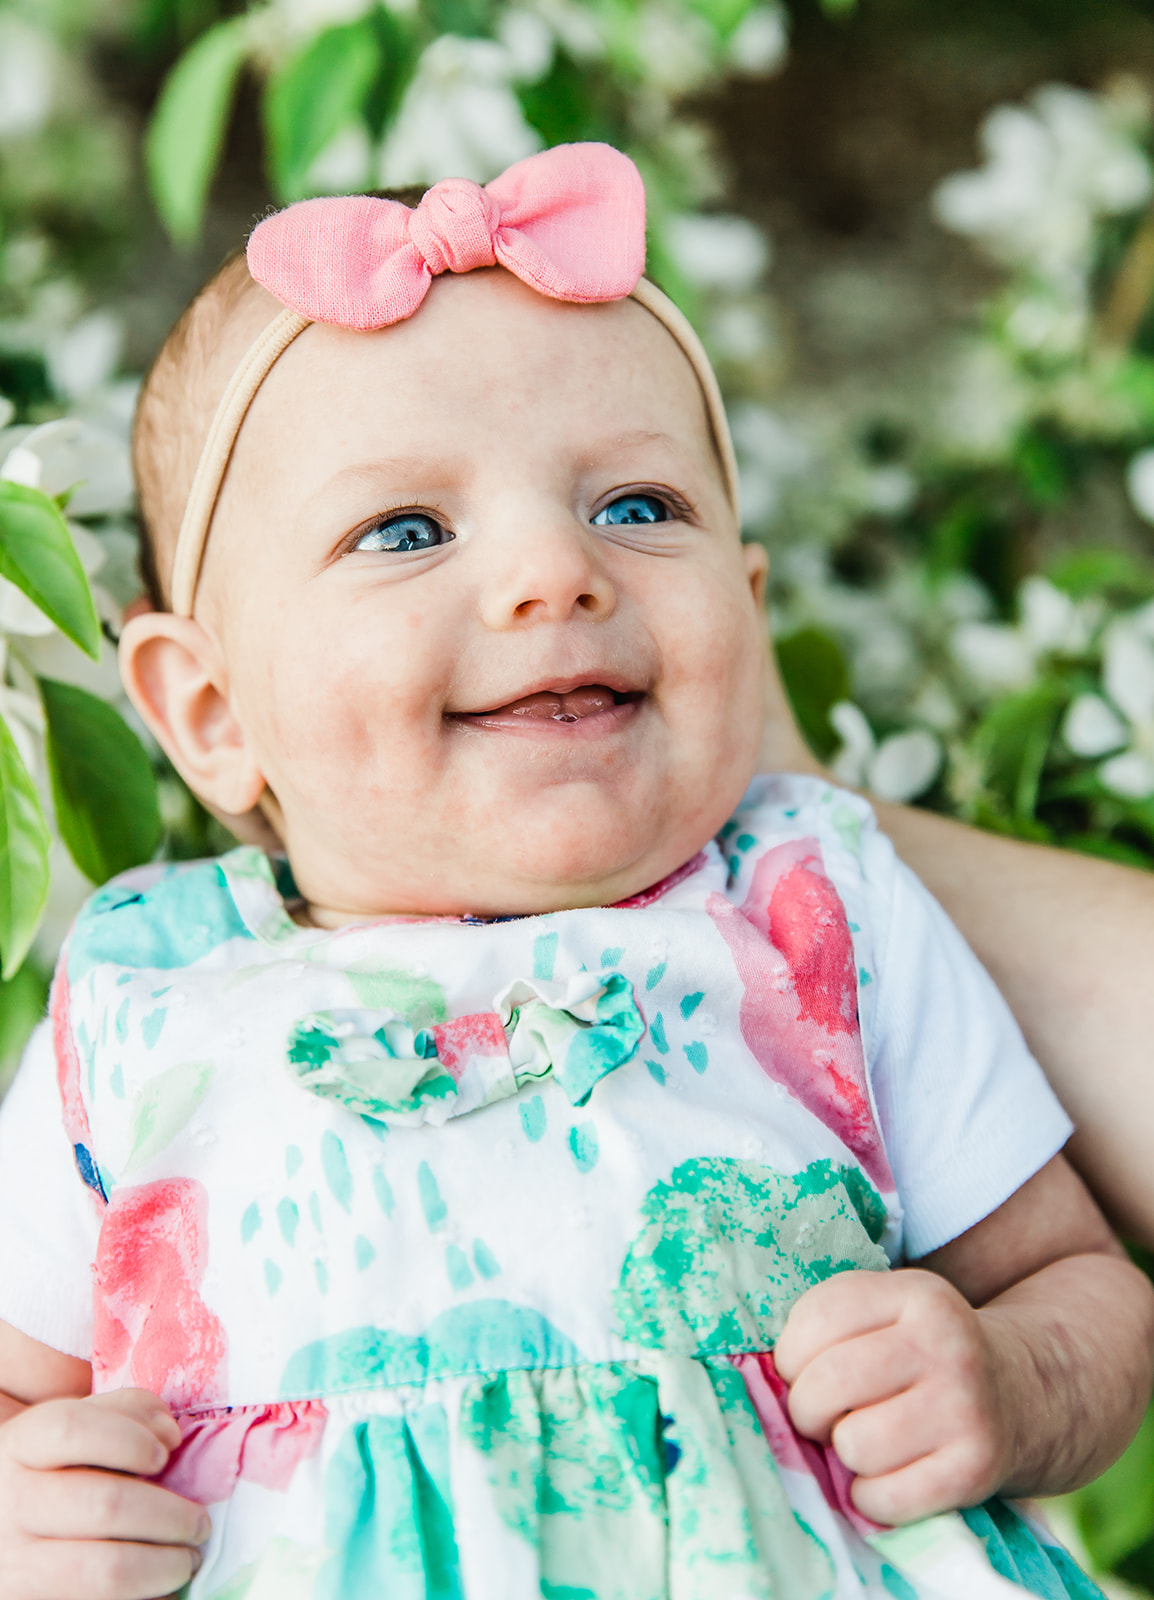 Happy baby with blue eyes. Flower baby dress. Happy girl. Big pink bow. Infant photography. Beautiful professional family photos. Big smiles from a baby girl. #blueeyes #pinkbow #infantphotography #makehersmile #happybabygirl #threeweekold #smileybaby #flowerdress #prfessionalphotos